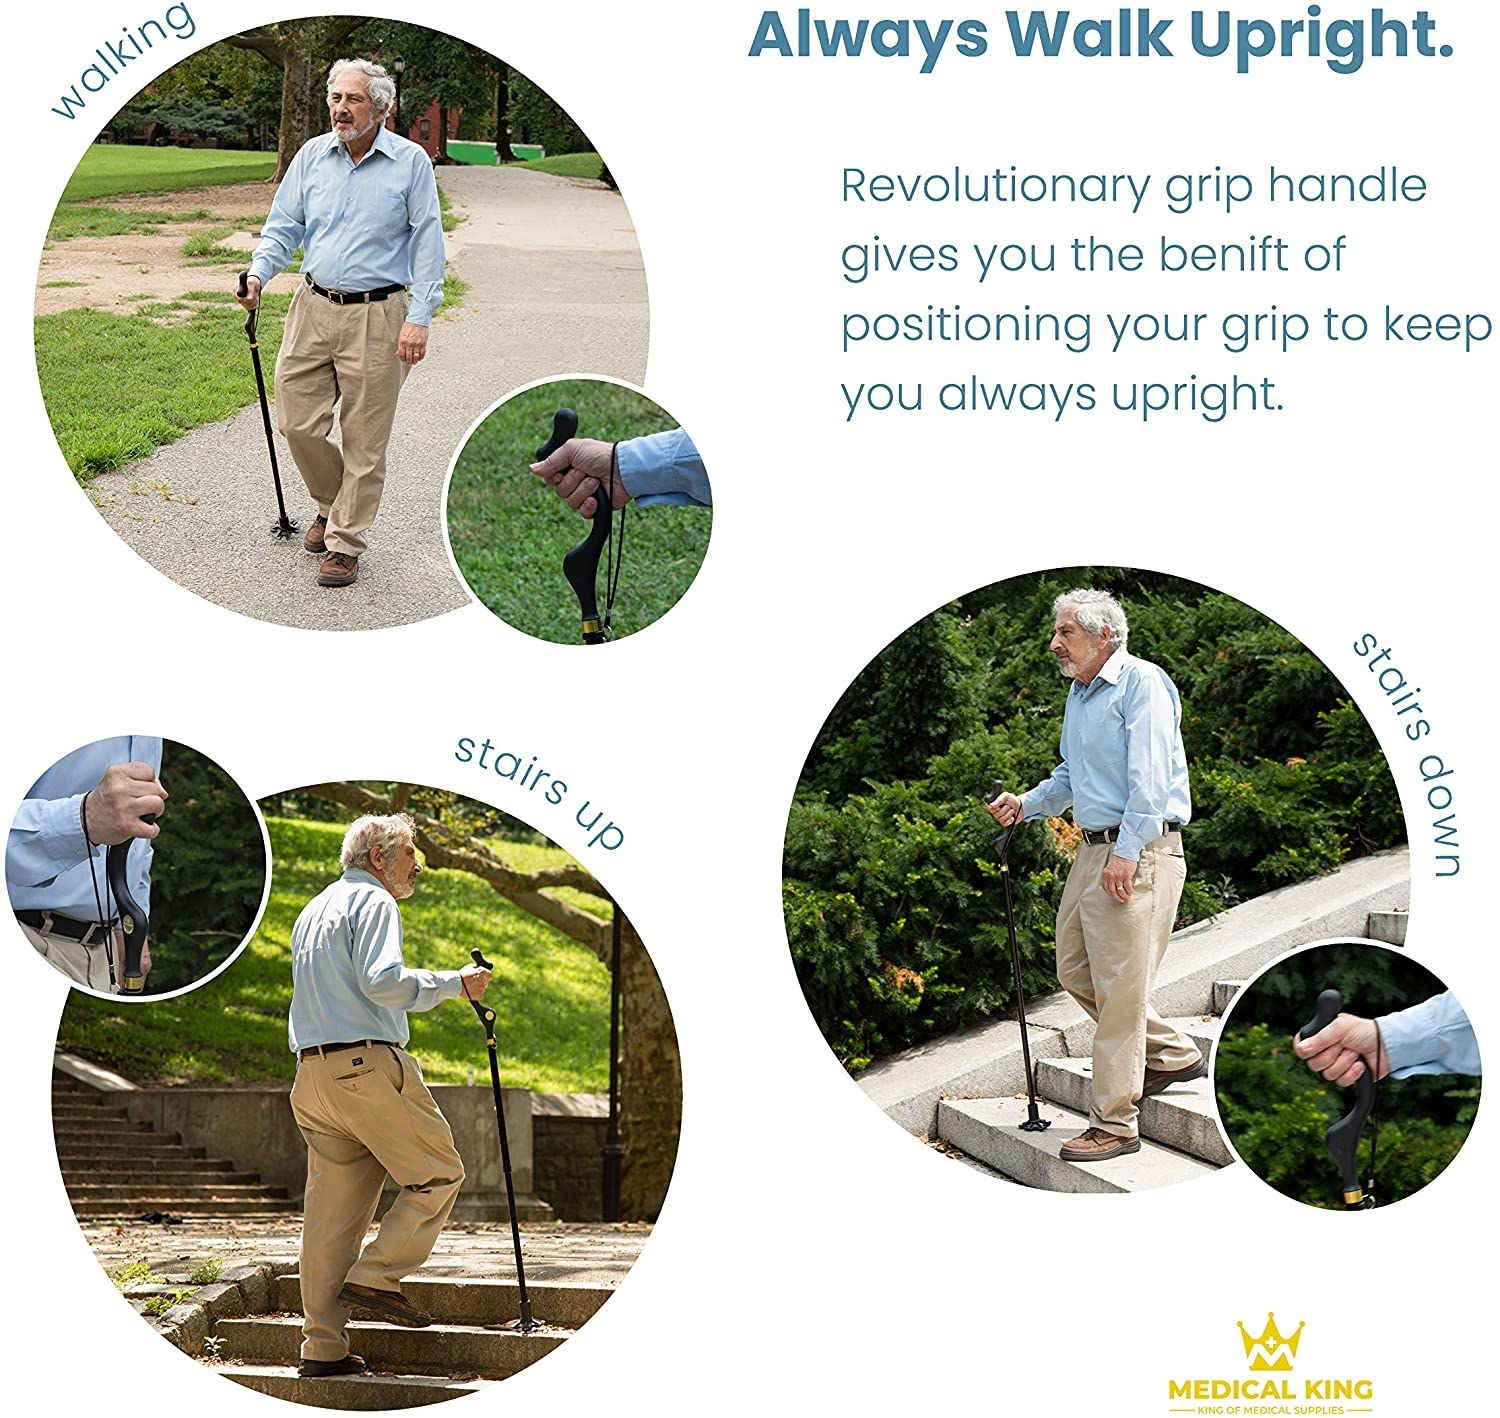 pics of older person walking up and down stairs, and on a flat sidewalk using the different parts of the top of the cane for support